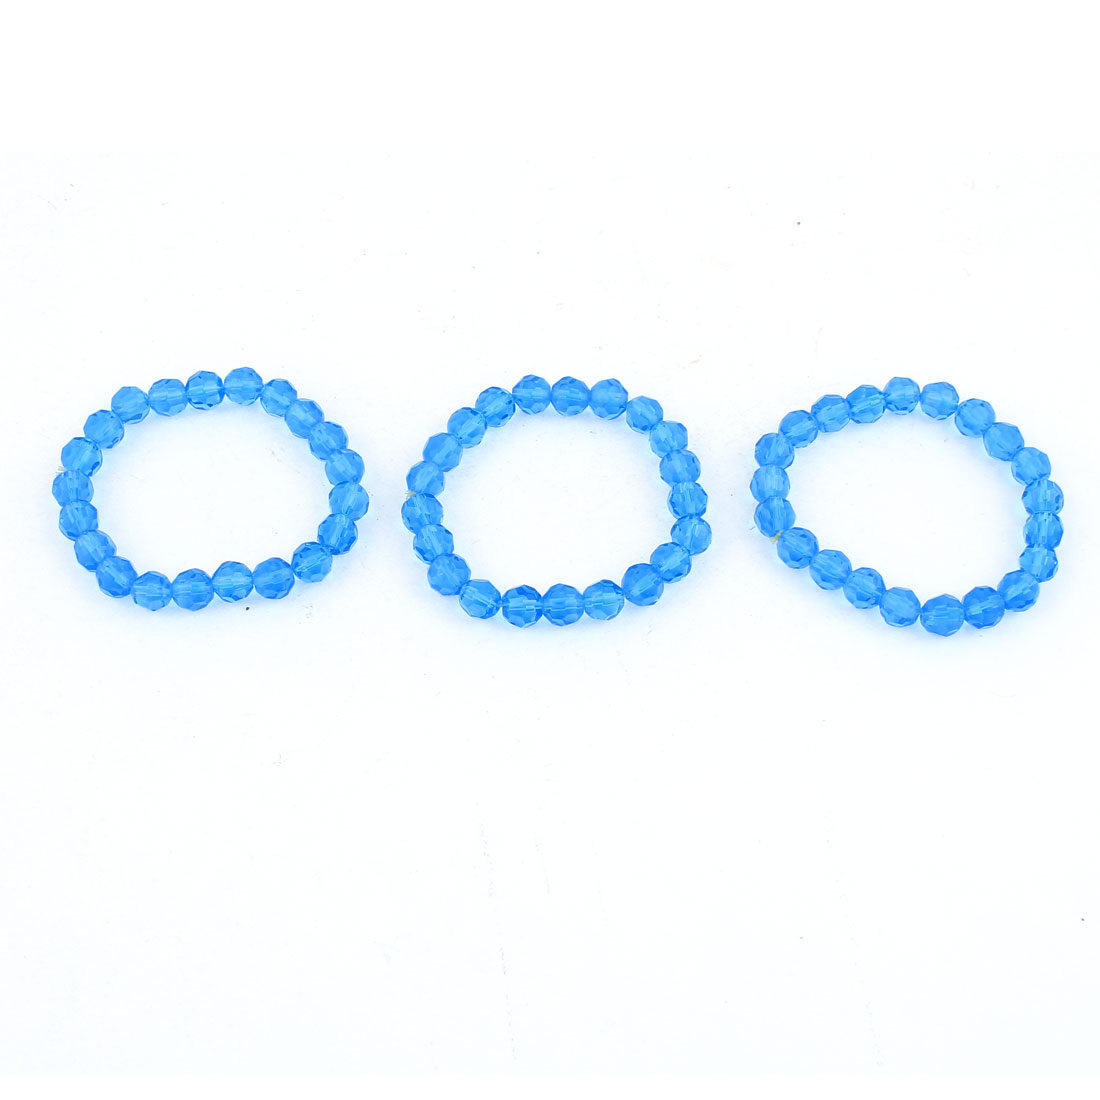 Lady Elastic Band Clear Blue Plastic Beads Accent Bracelet 3 Pcs